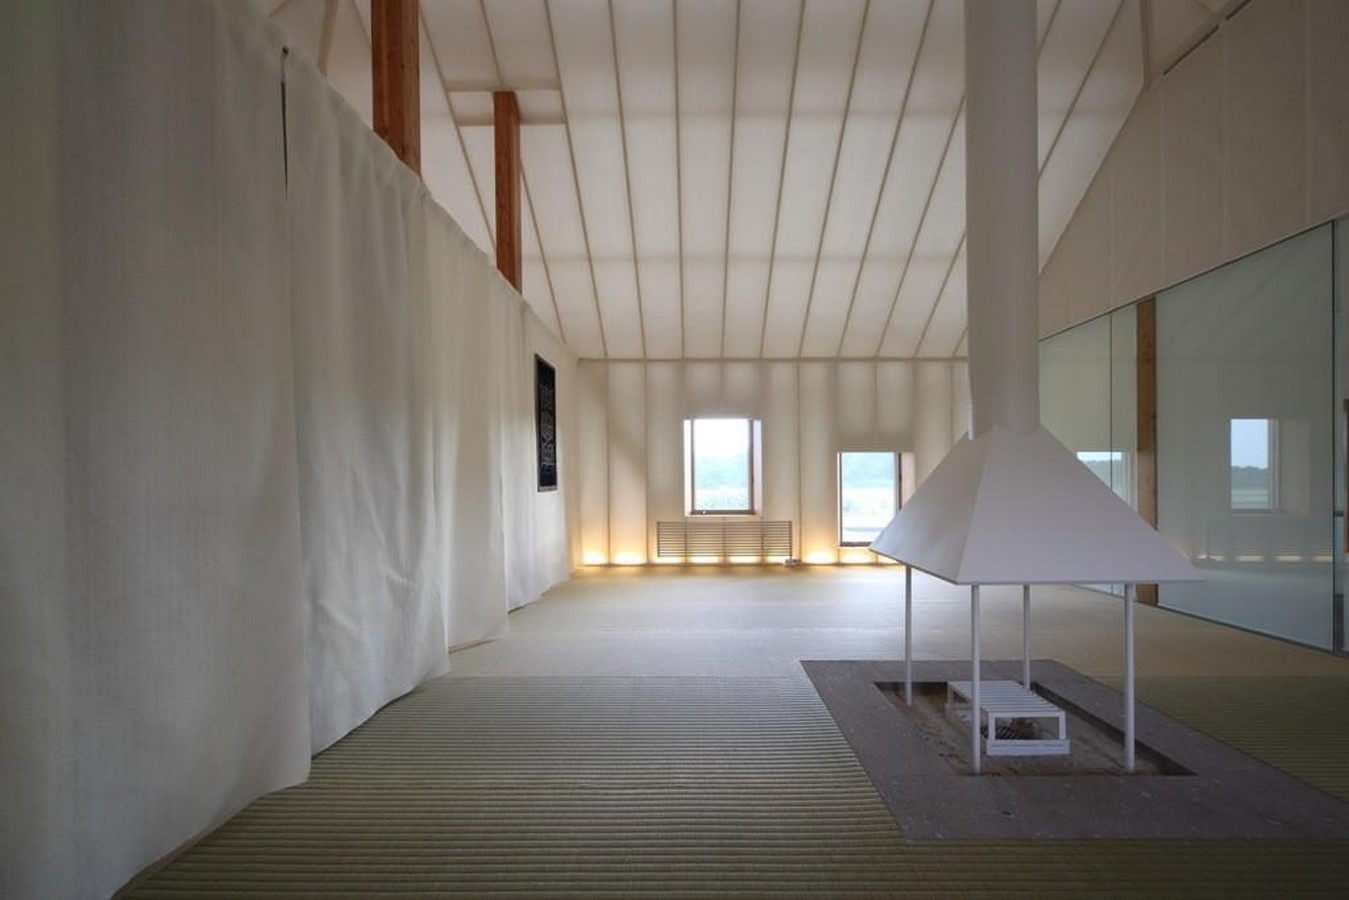 Architecture of Japan: Is it really Sustainable? - Sheet15